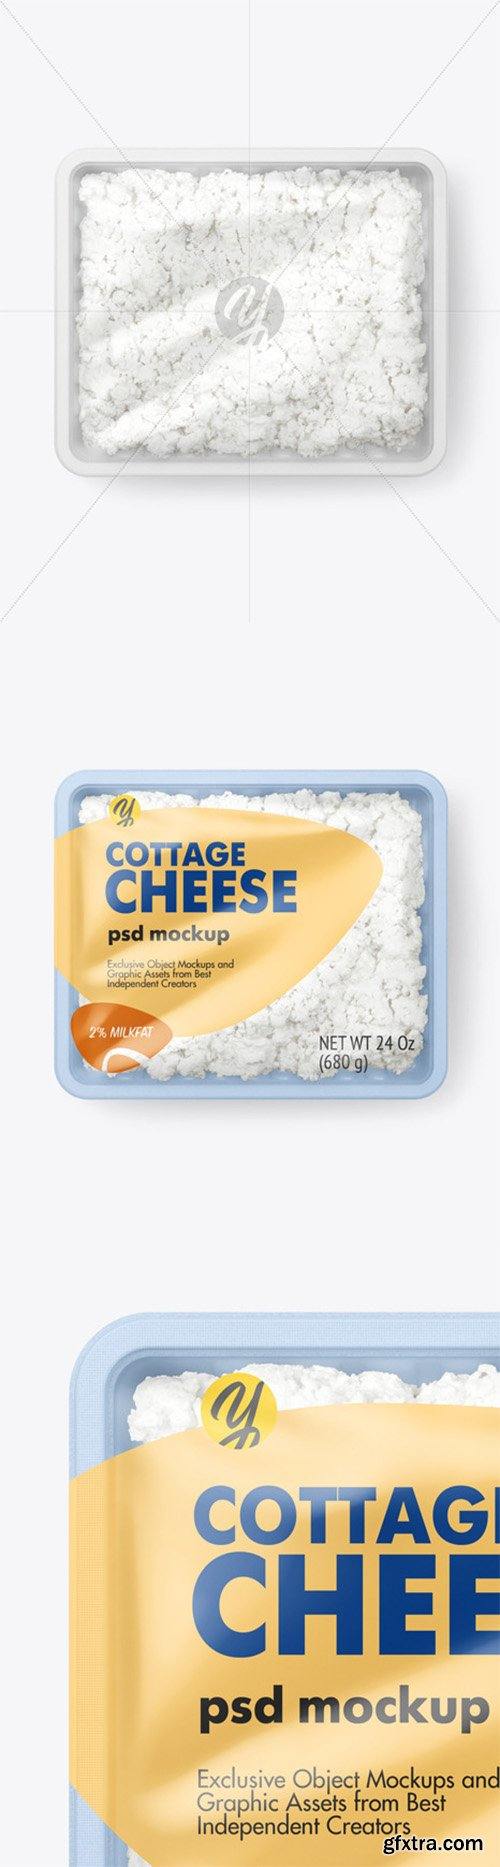 Plastic Tray With Cottage Cheese Mockup 66087